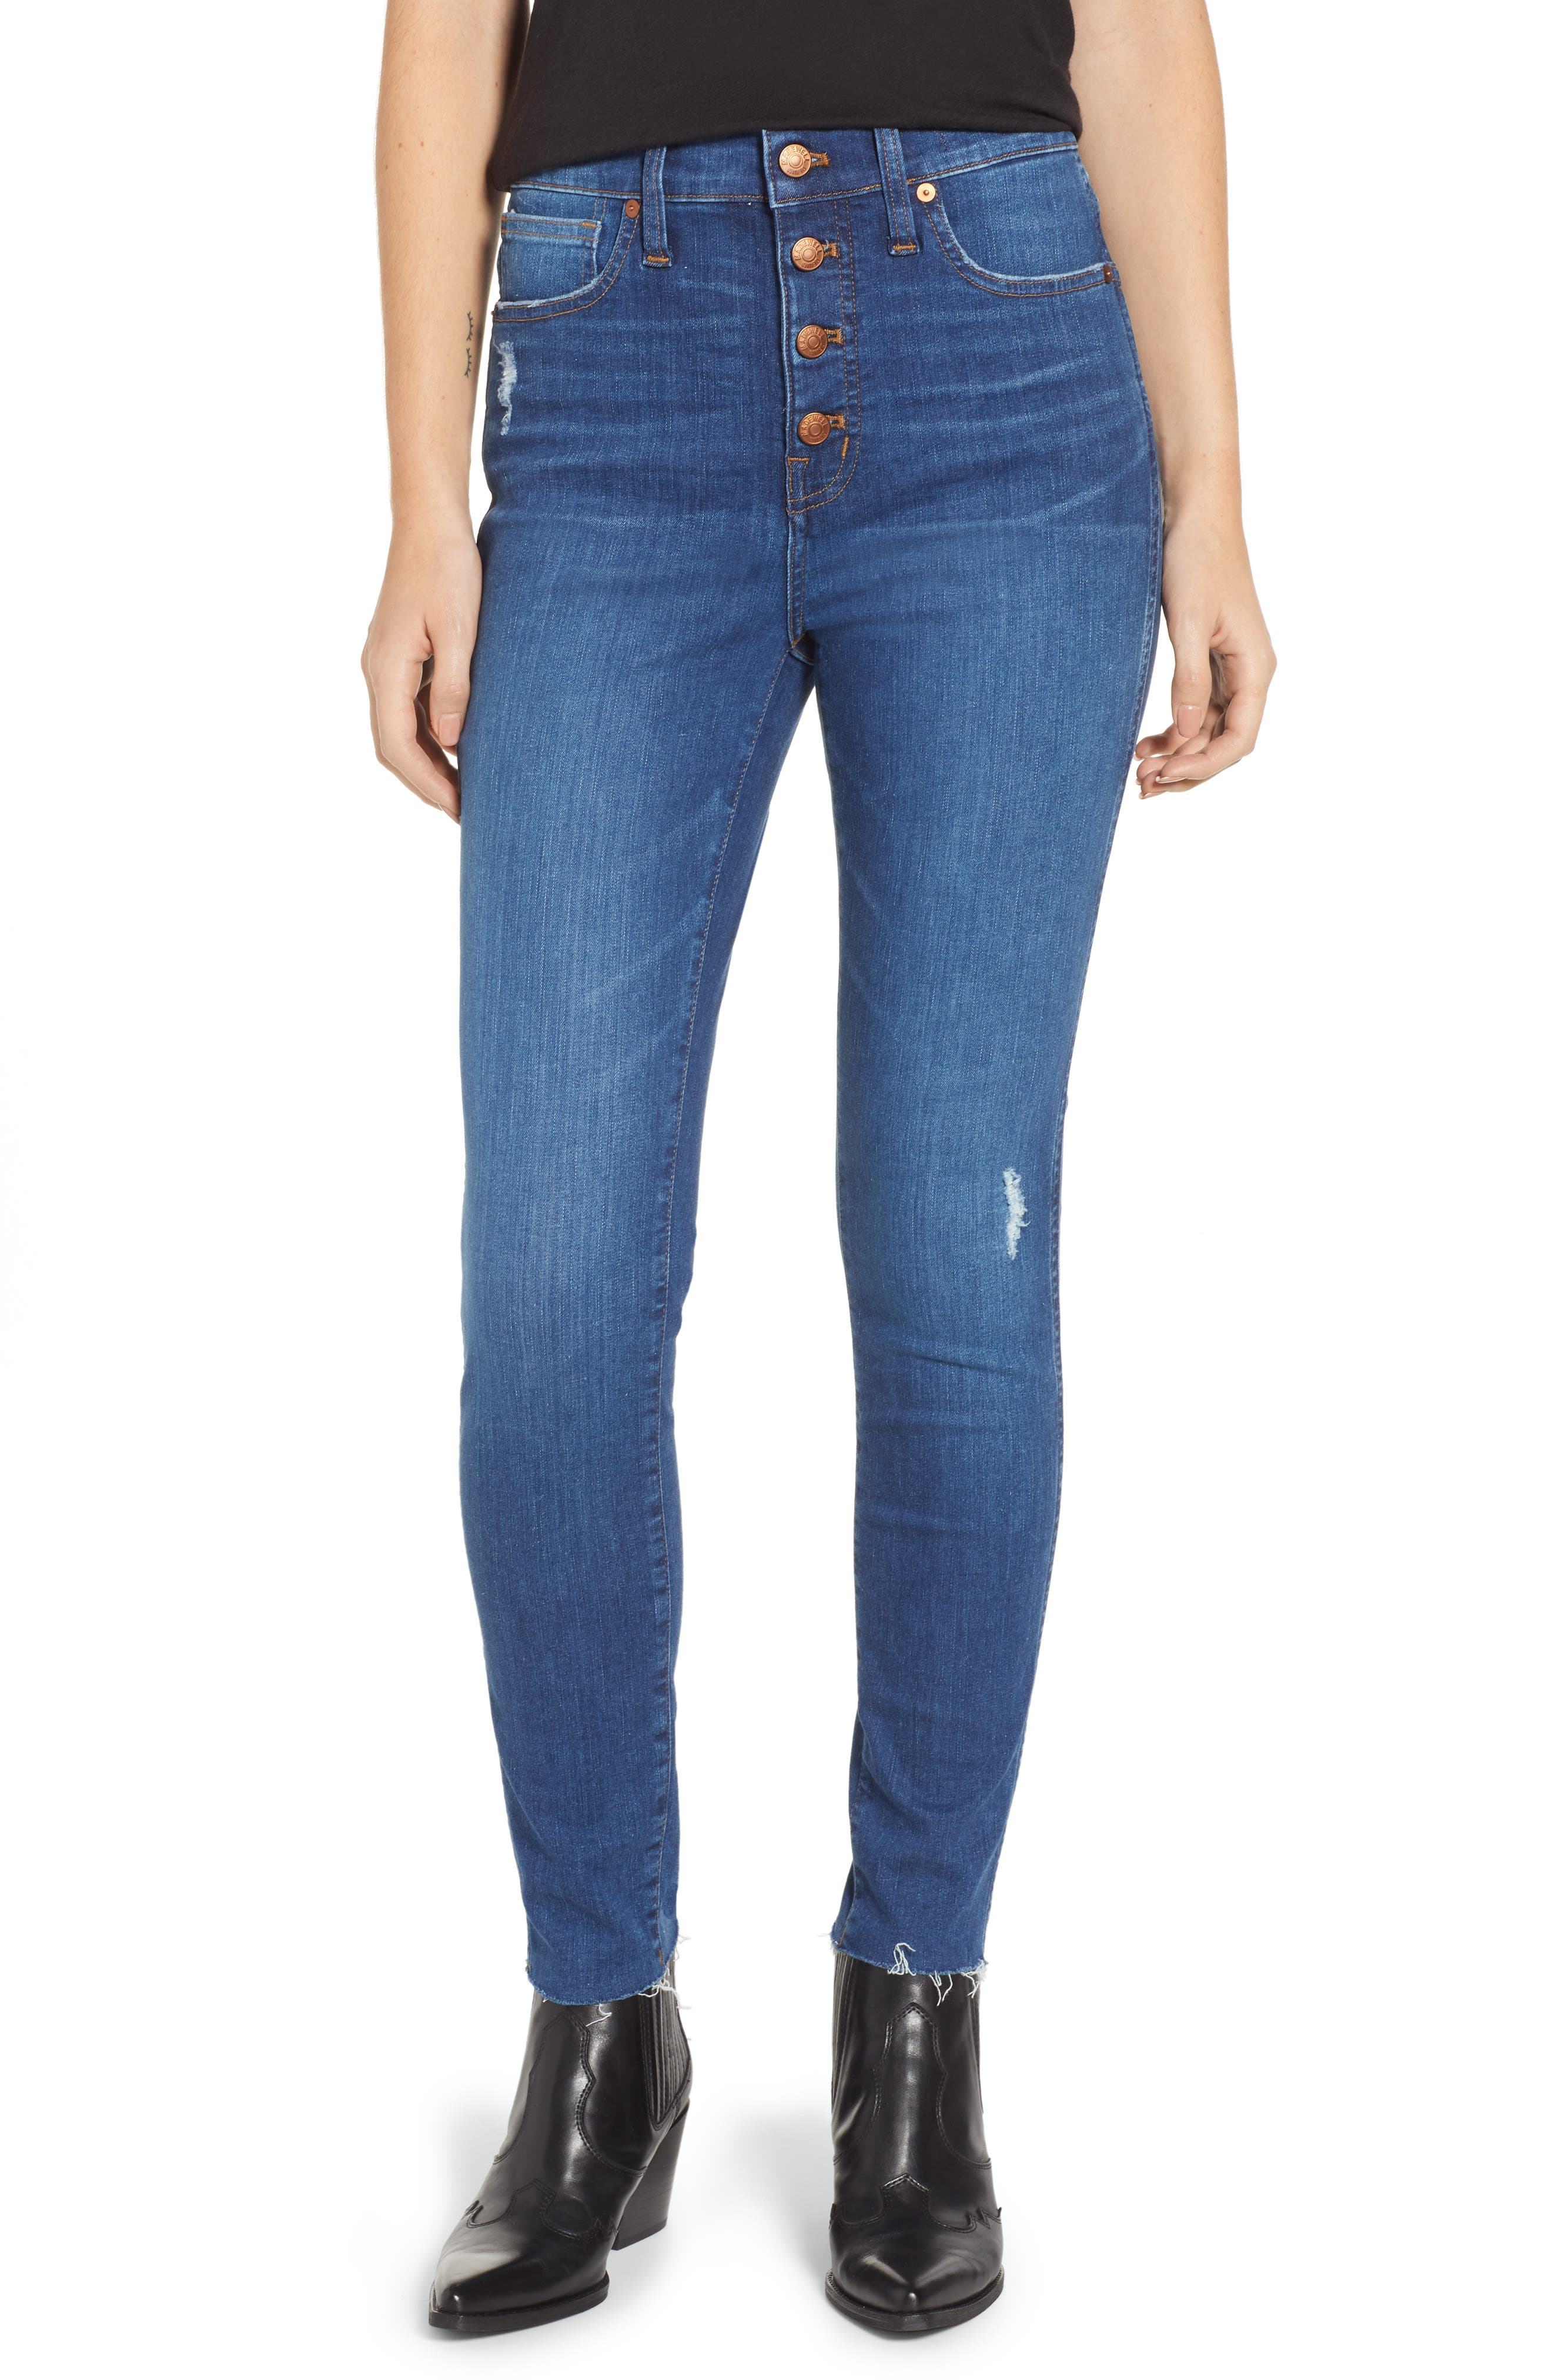 MADEWELL, 10-Inch High Rise Skinny Jeans, Main thumbnail 1, color, HANNA